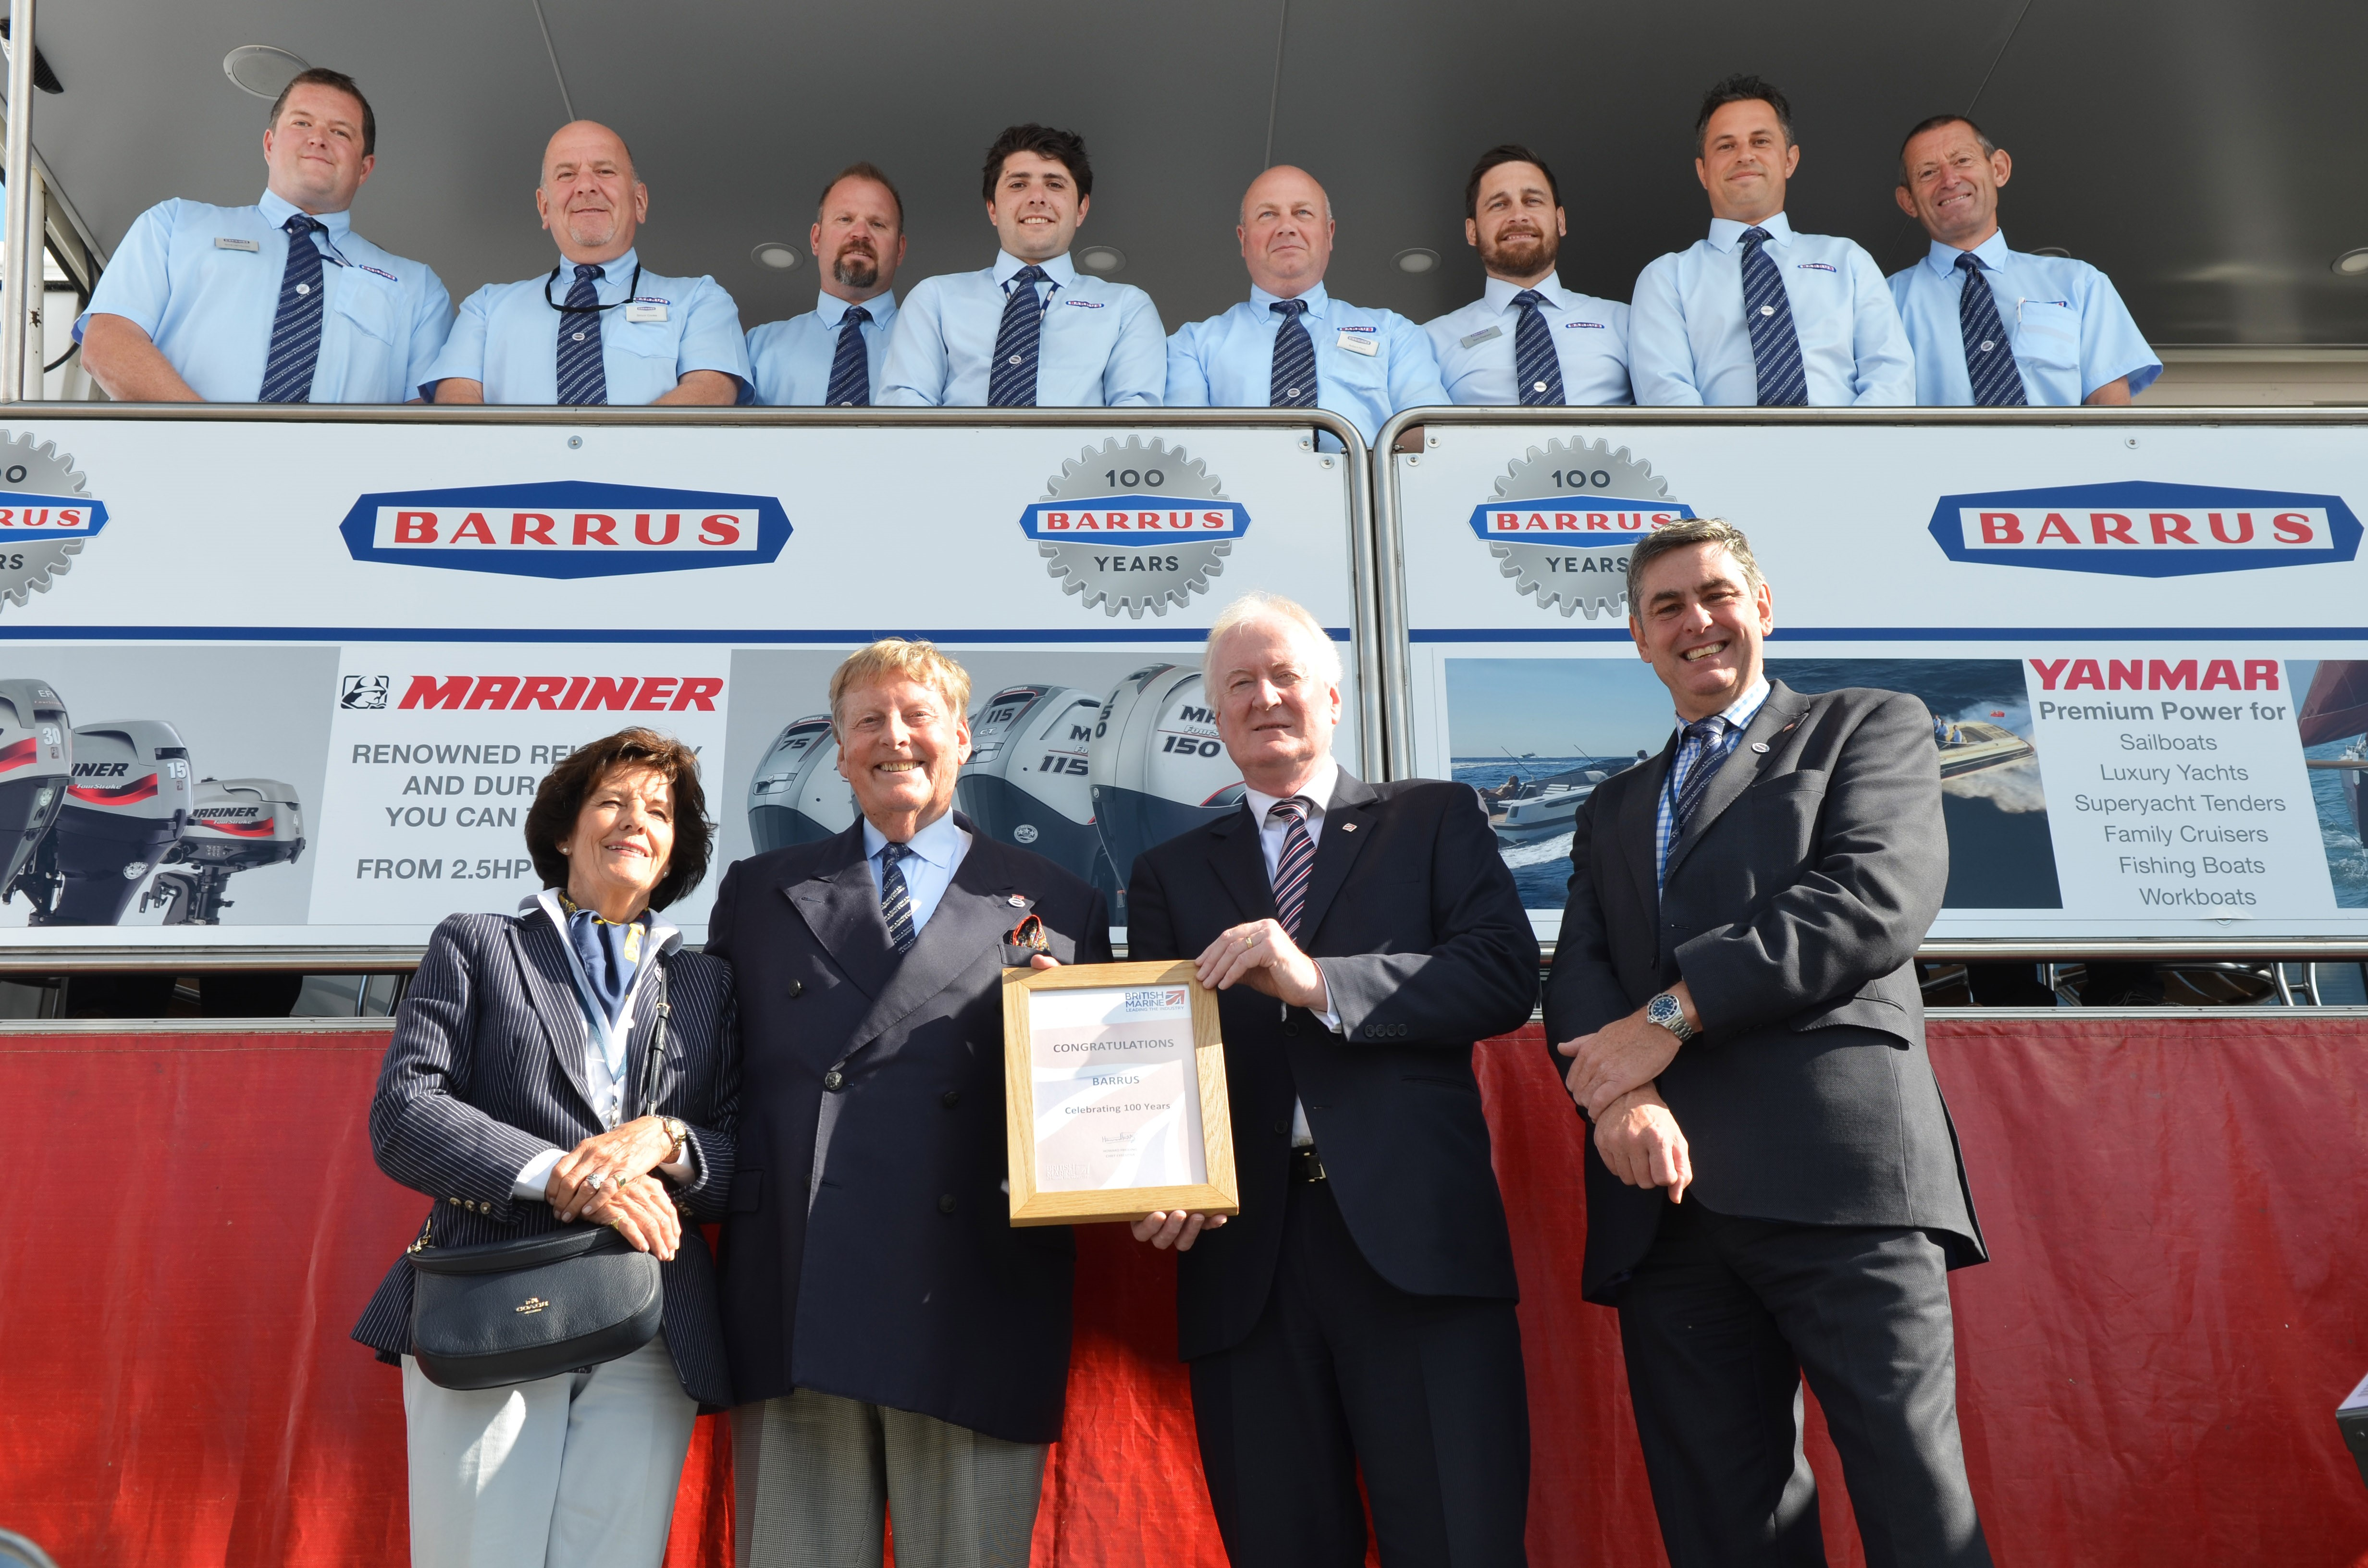 British Marine celebrates Barrus' 100 year anniversary during TheYachtMarket.com Southampton Boat Show